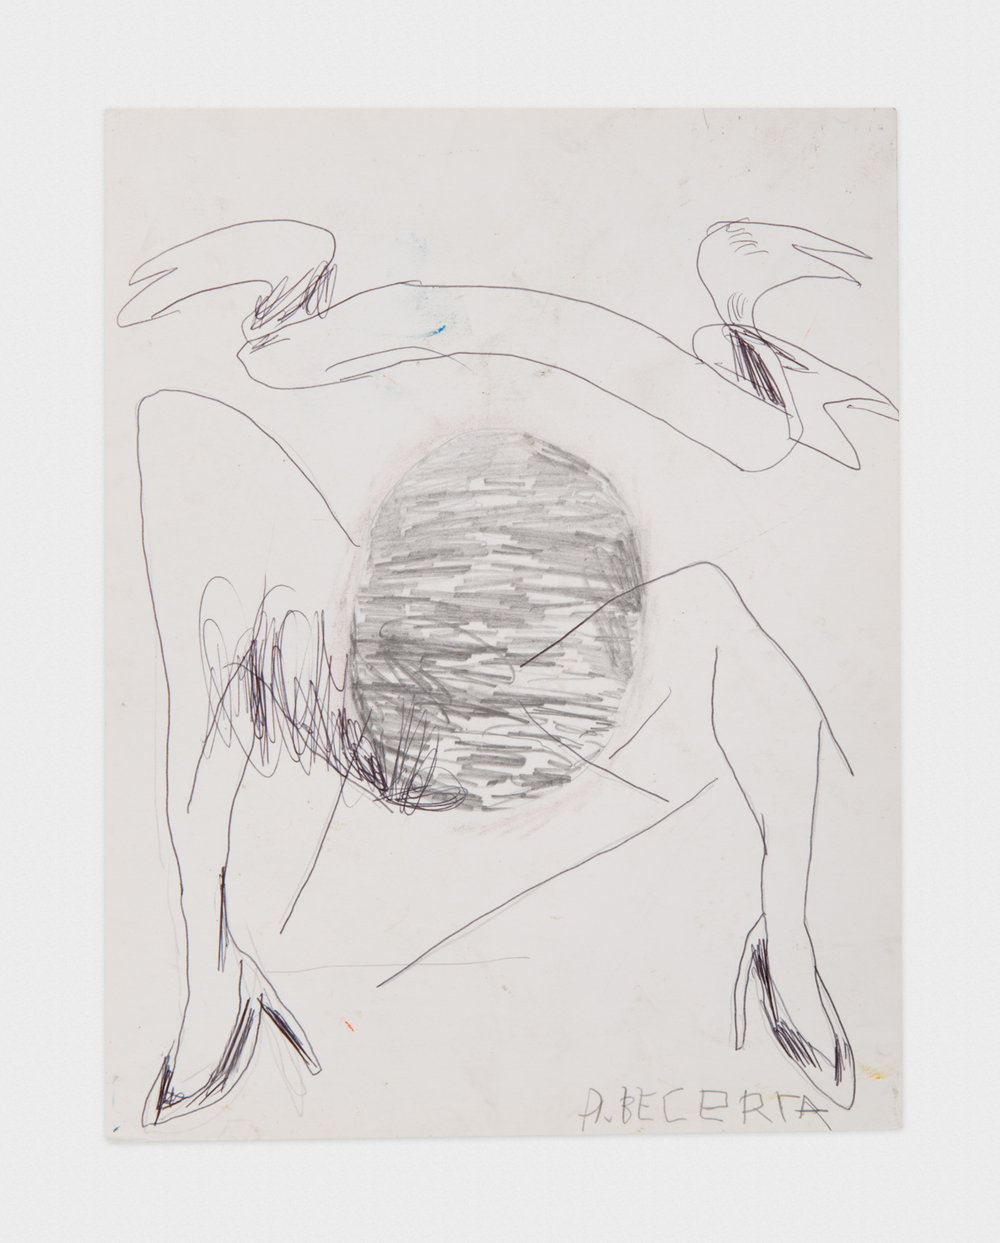 Alex Becerra  Untitled  2016 Ballpoint pen and graphite on paper 11h x 8 ½w in AB432